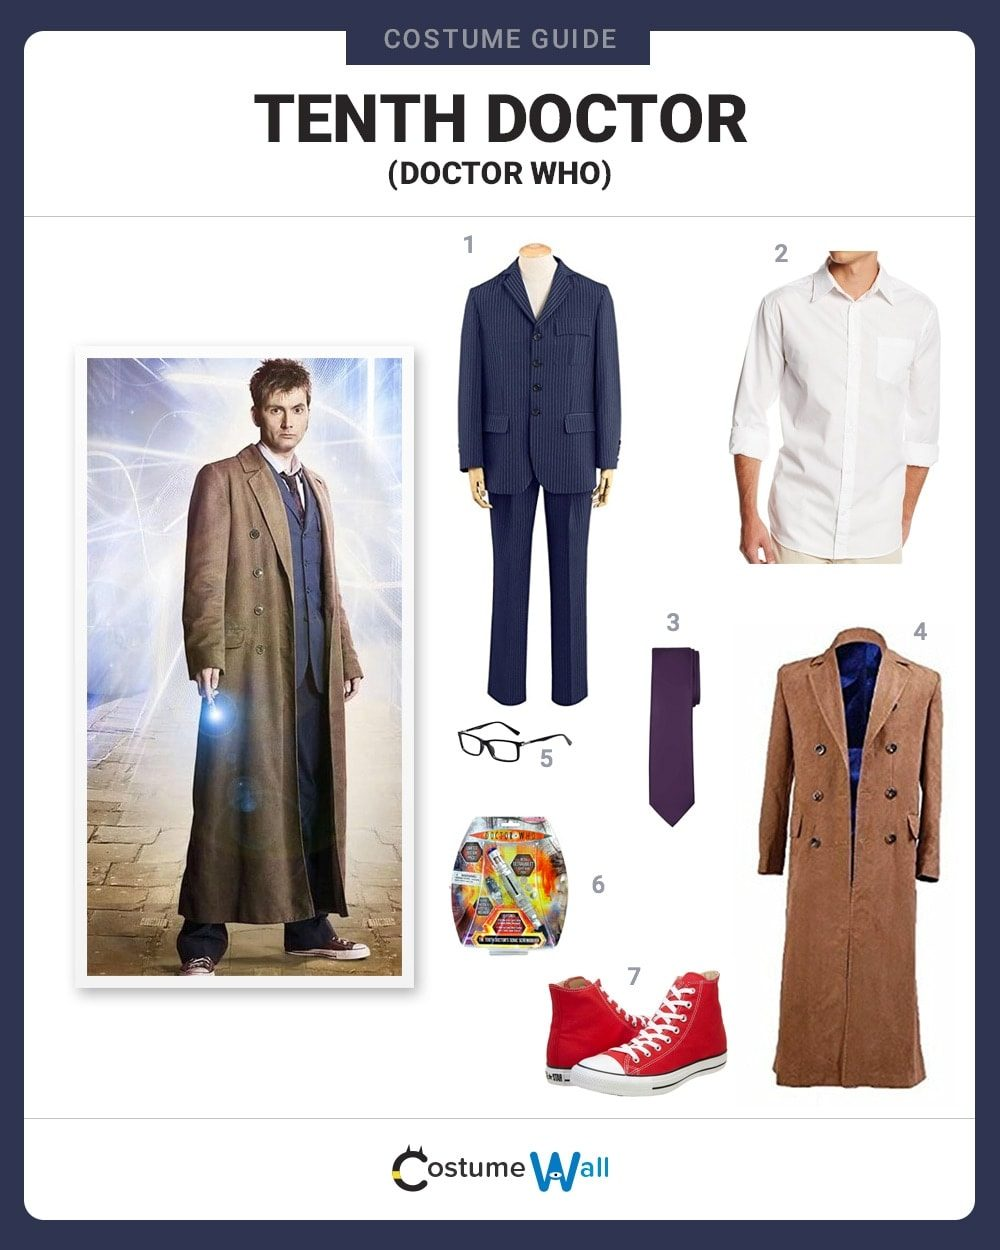 Tenth Doctor Costume Guide